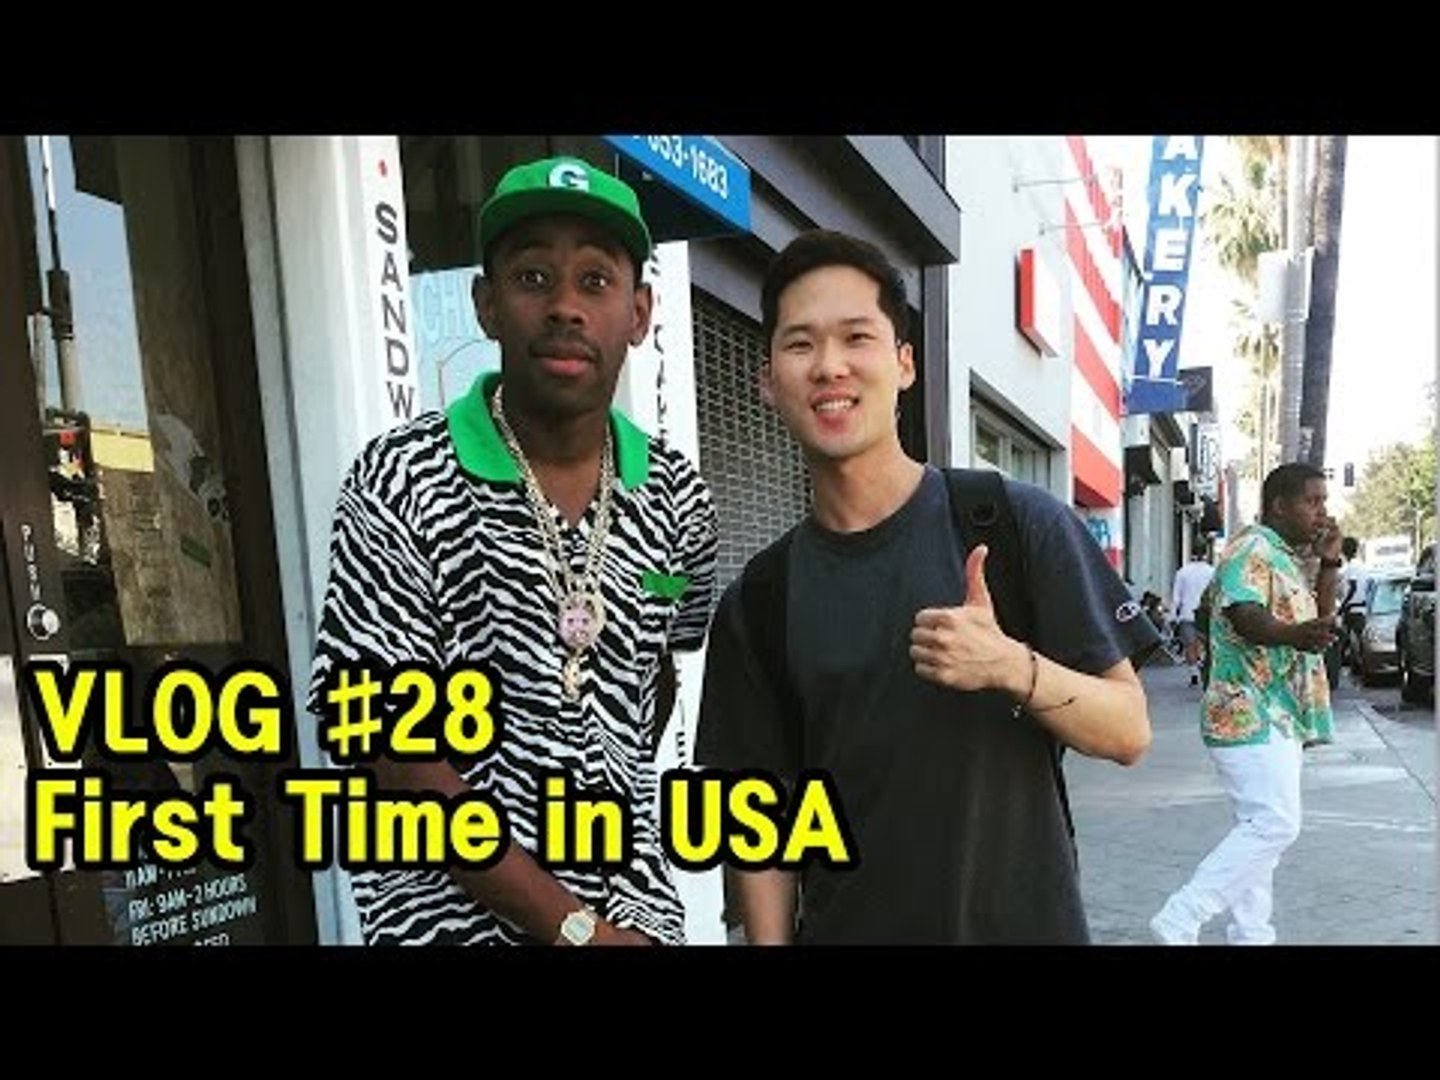 [JK VLOG] First Time in USA - LA - Vidcon  [Korean Bros]